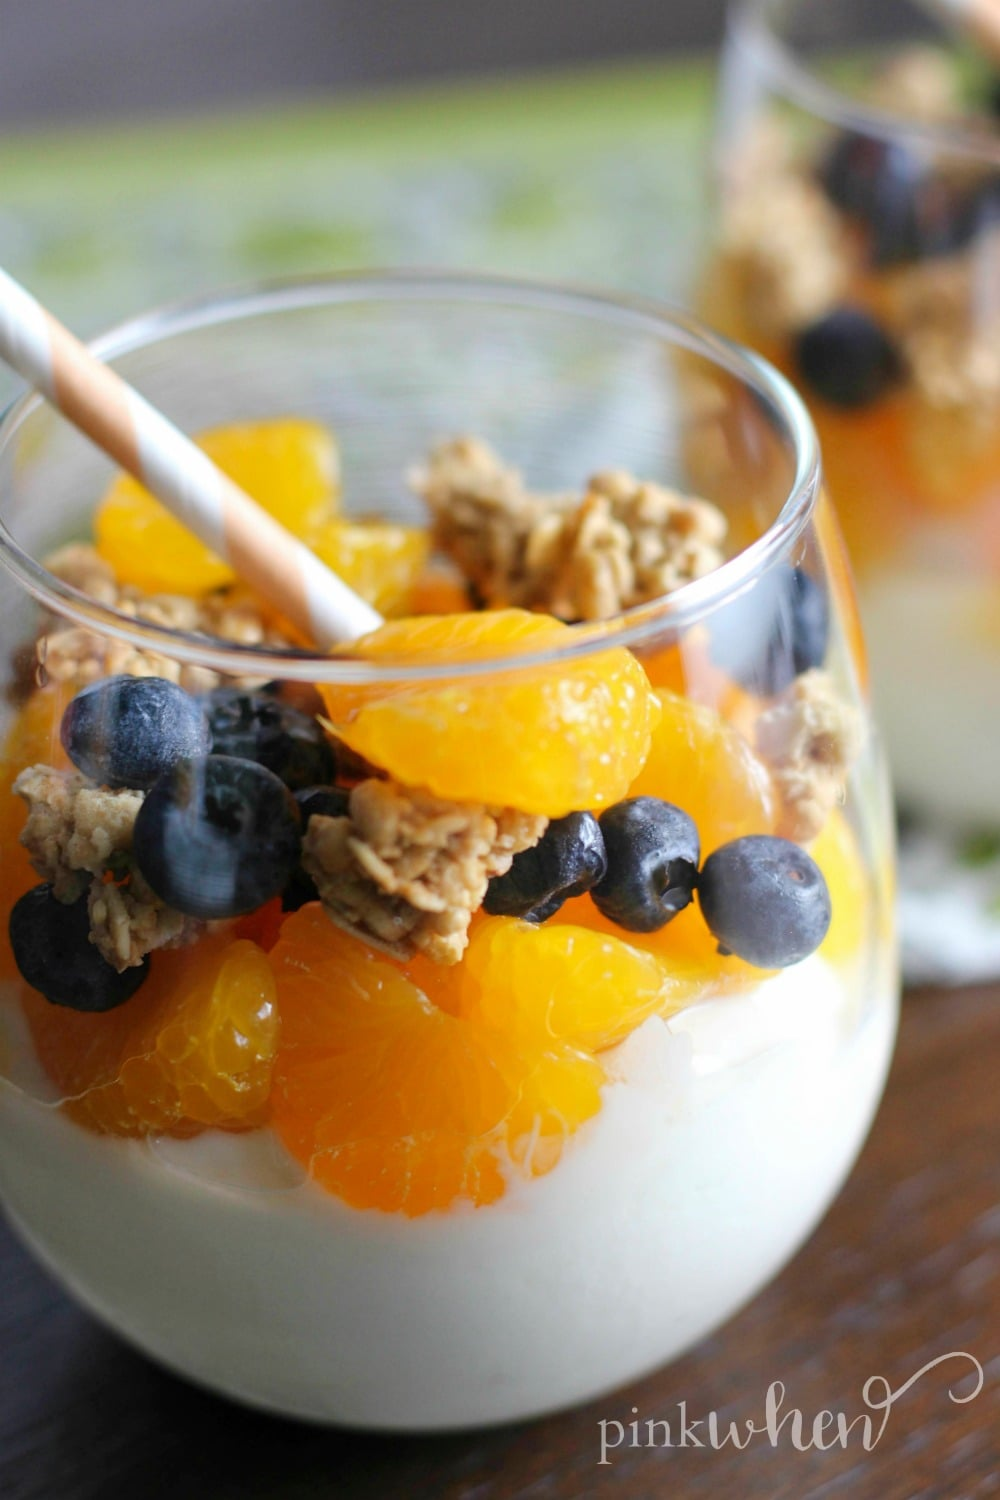 This mandarin orange and blueberry yogurt parfait is a clean and healthy dessert!